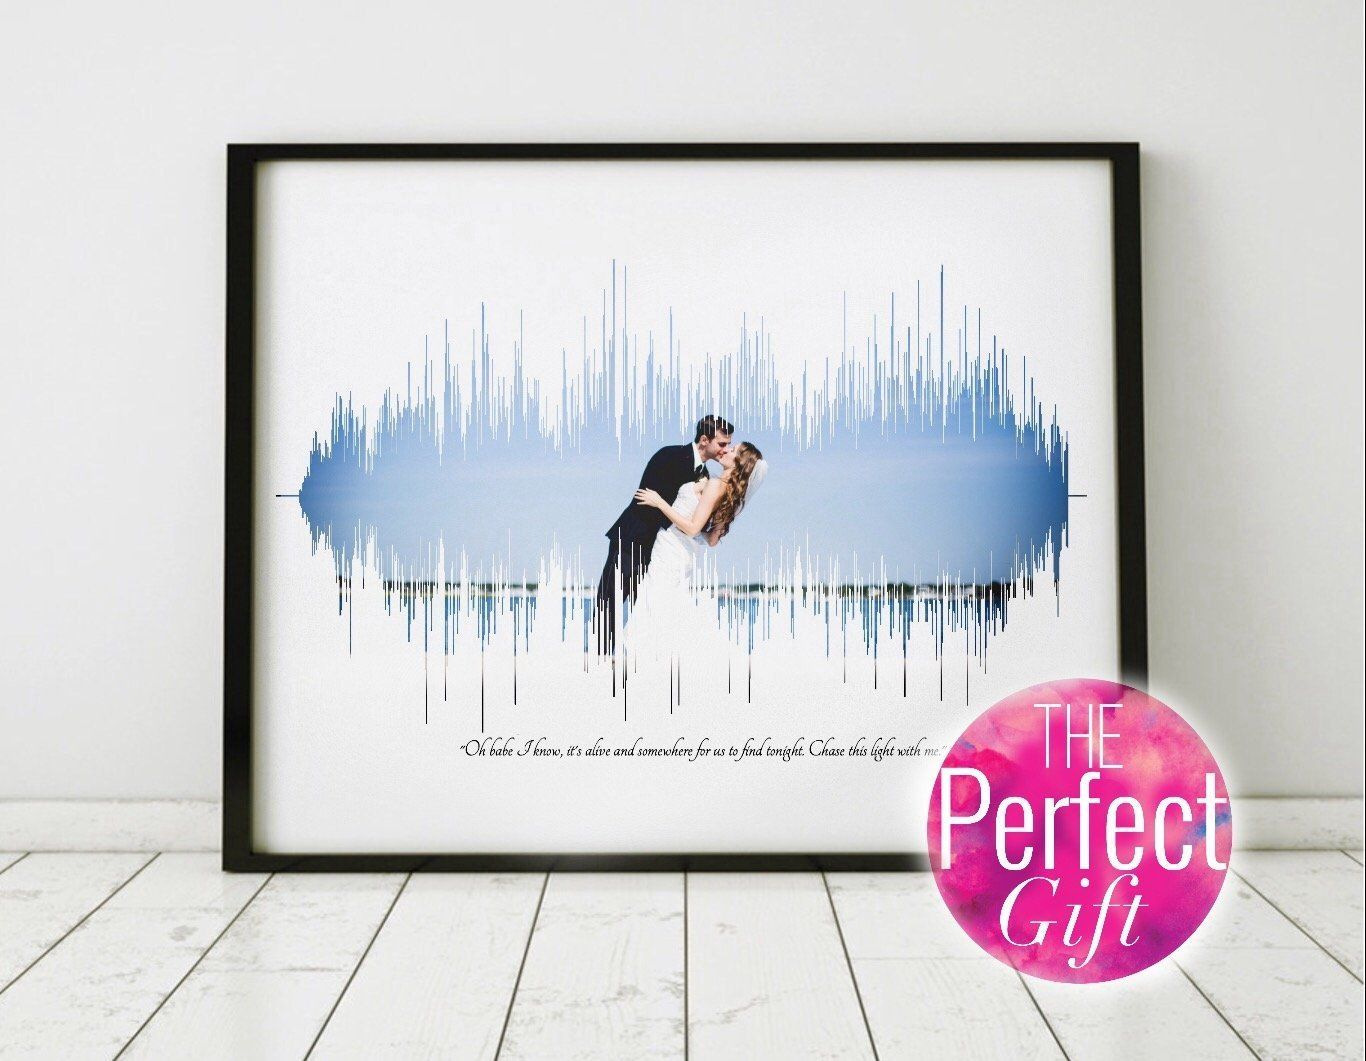 Wedding Song Gift Canvas Lyric Art 16x20 Inch The Perfect Sentimental This Is An Order For A Large Custom Sound